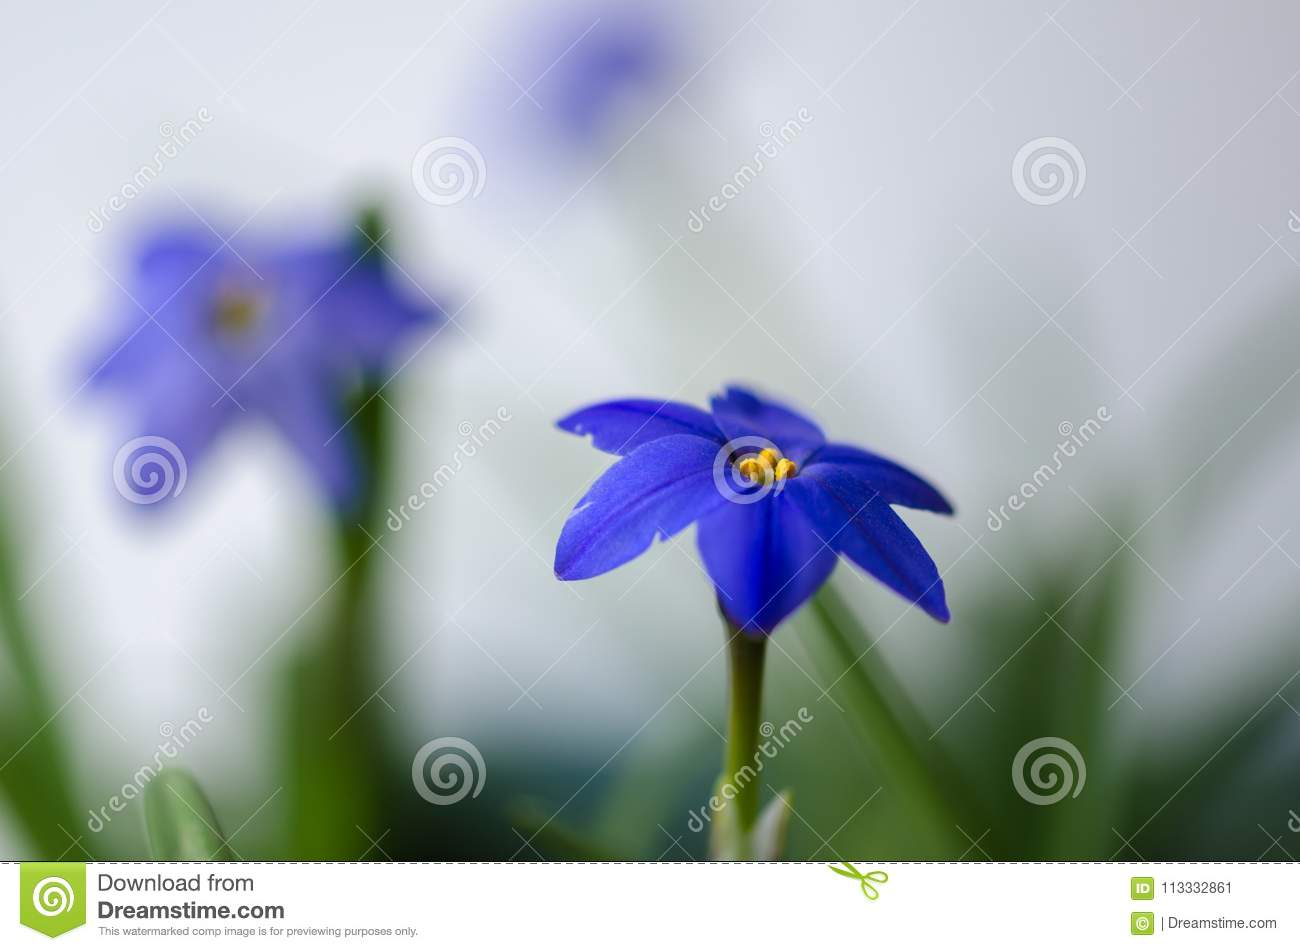 Spring Star Flower Is A Blue Bulbous Flower That Blooms In The S